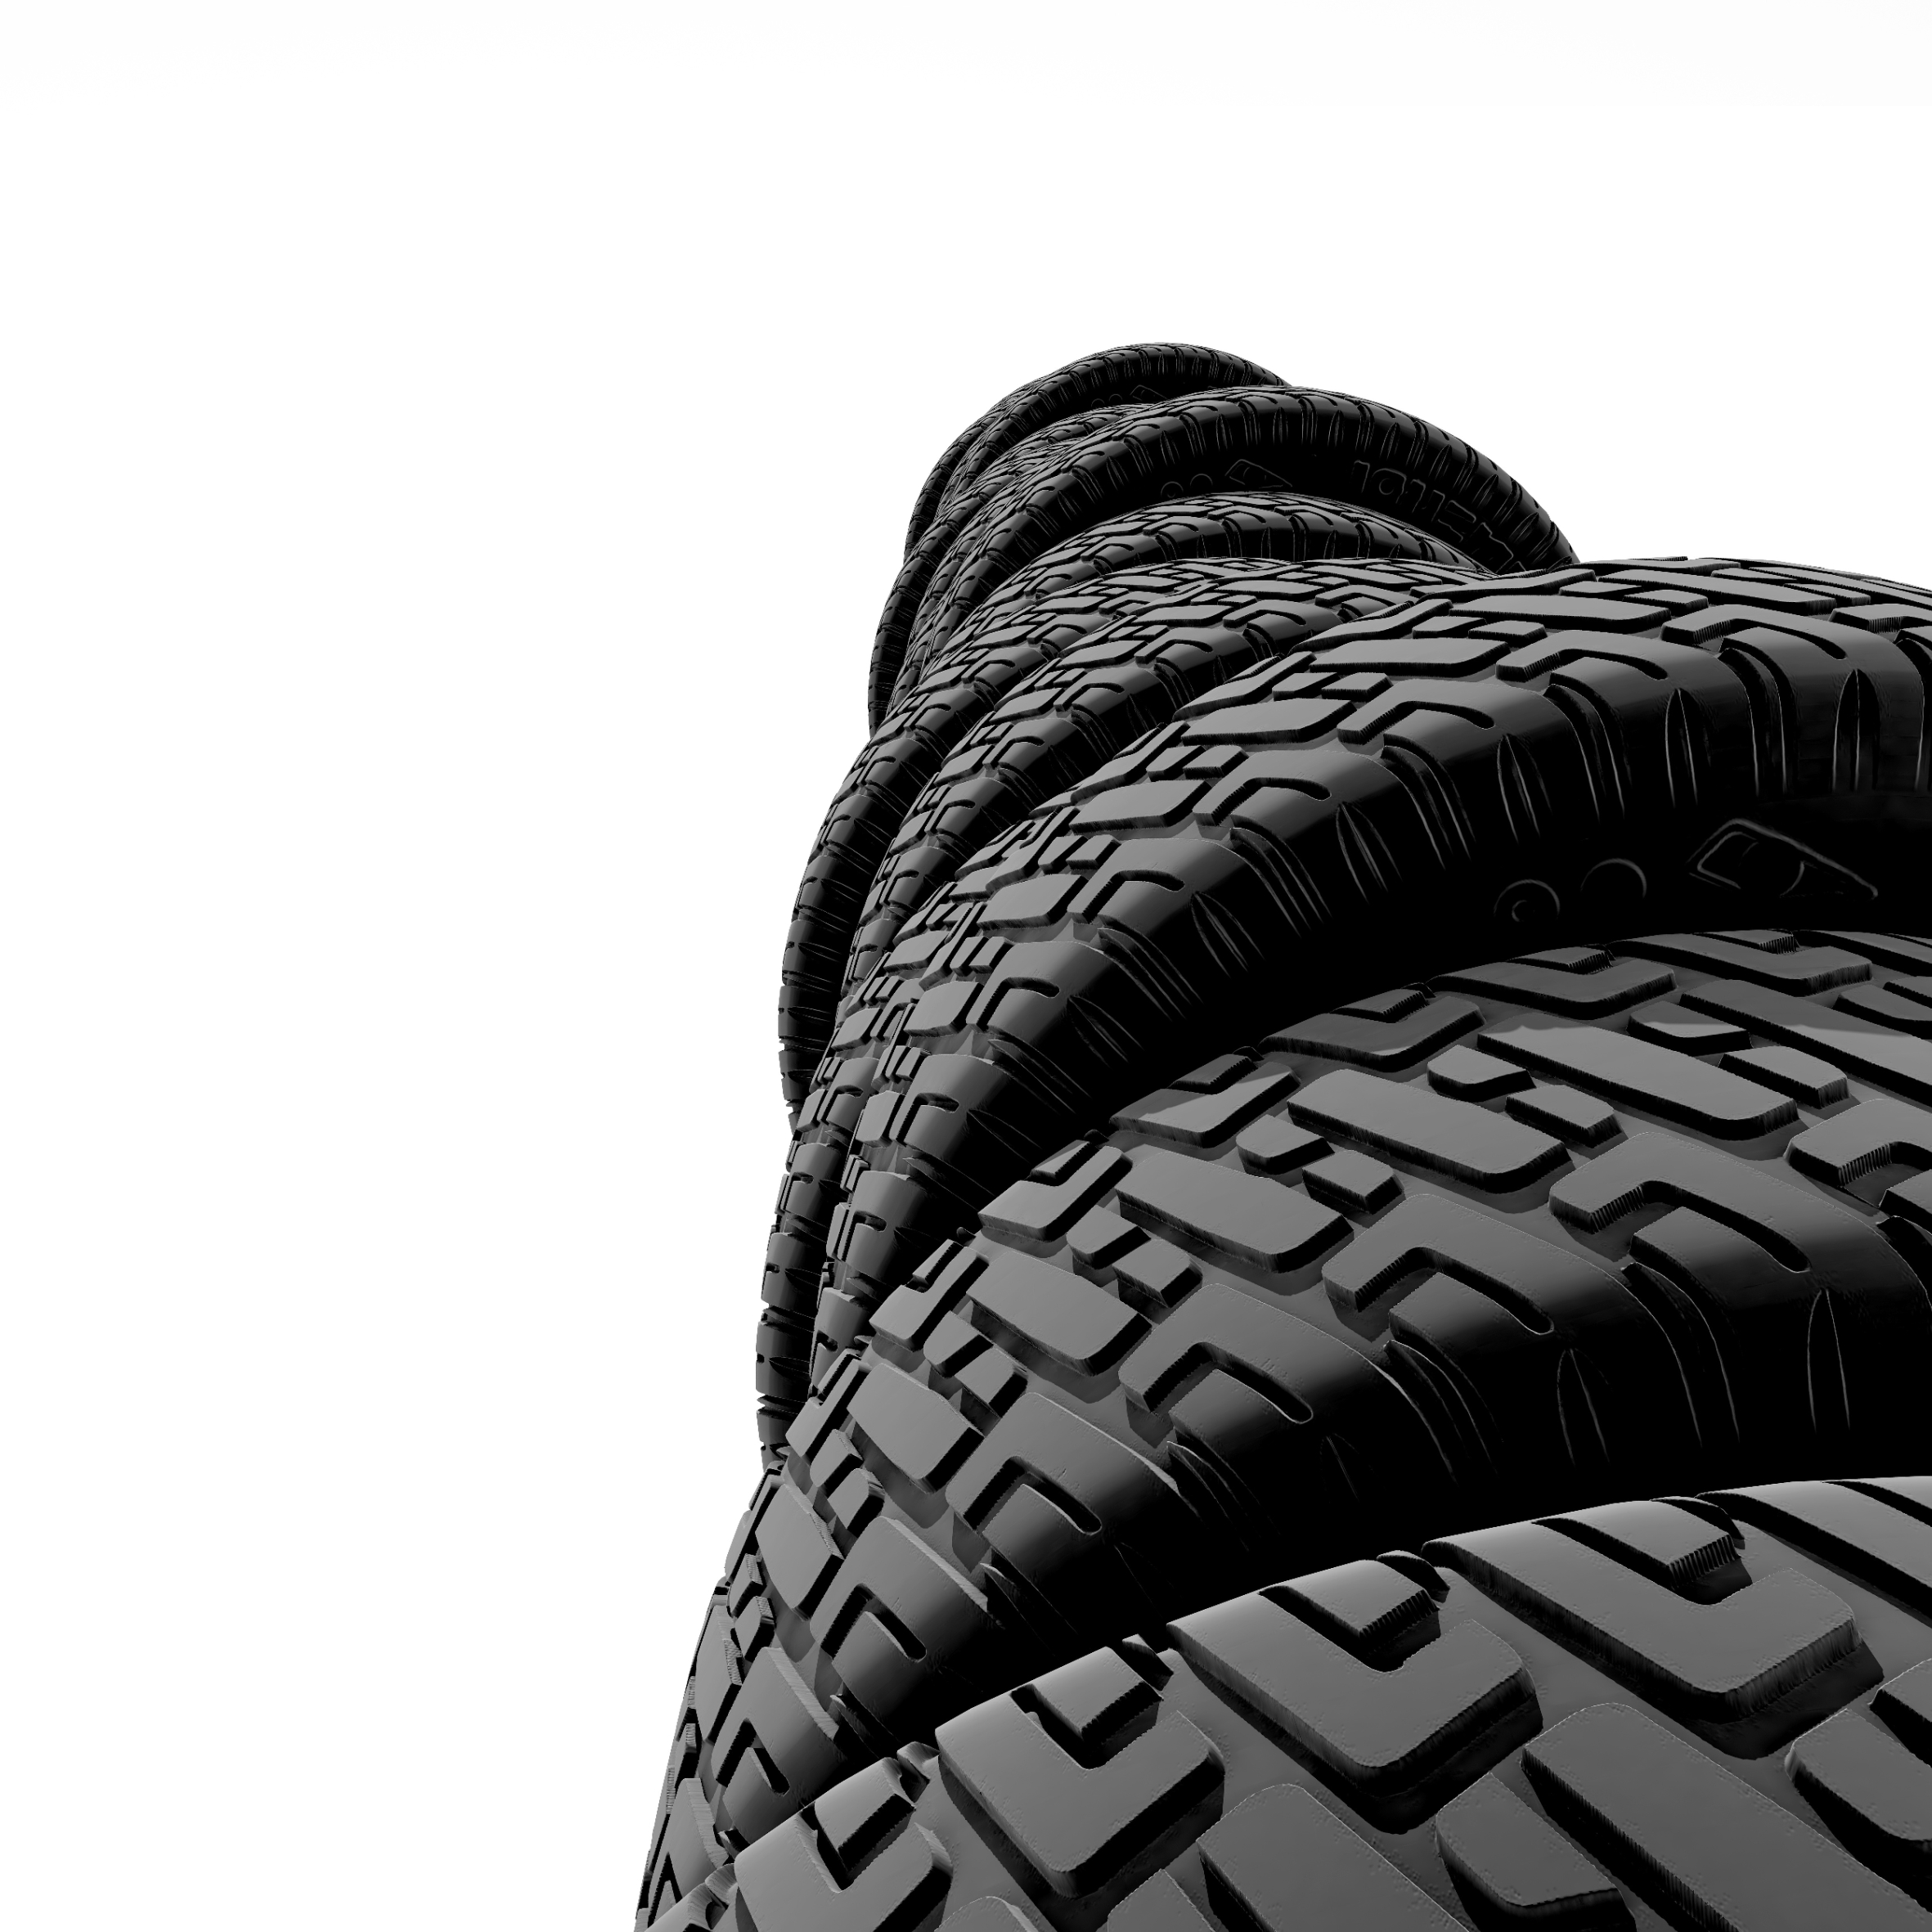 4 x 4 Tyres, we stock the most at the best prices